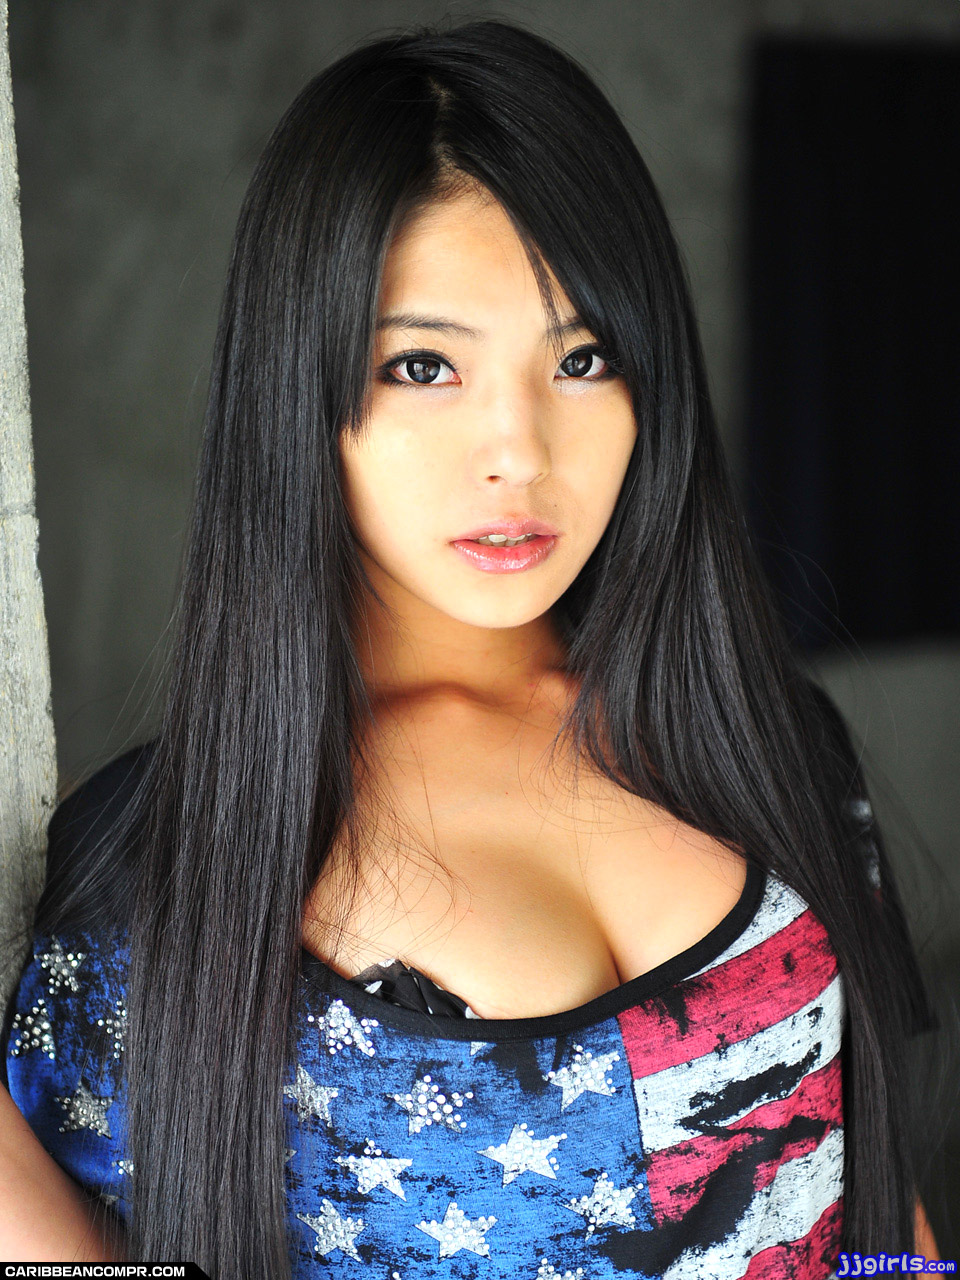 Asia busty